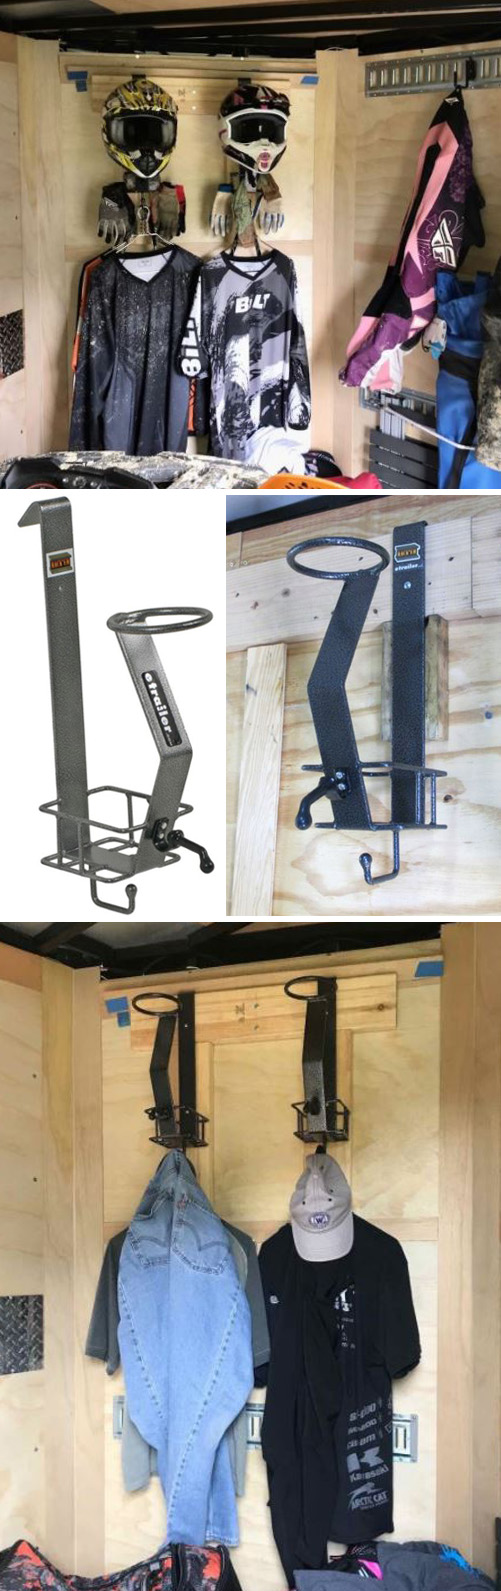 Organize your helmets and gear up and off the ground in your enclosed trailer or on any wall.